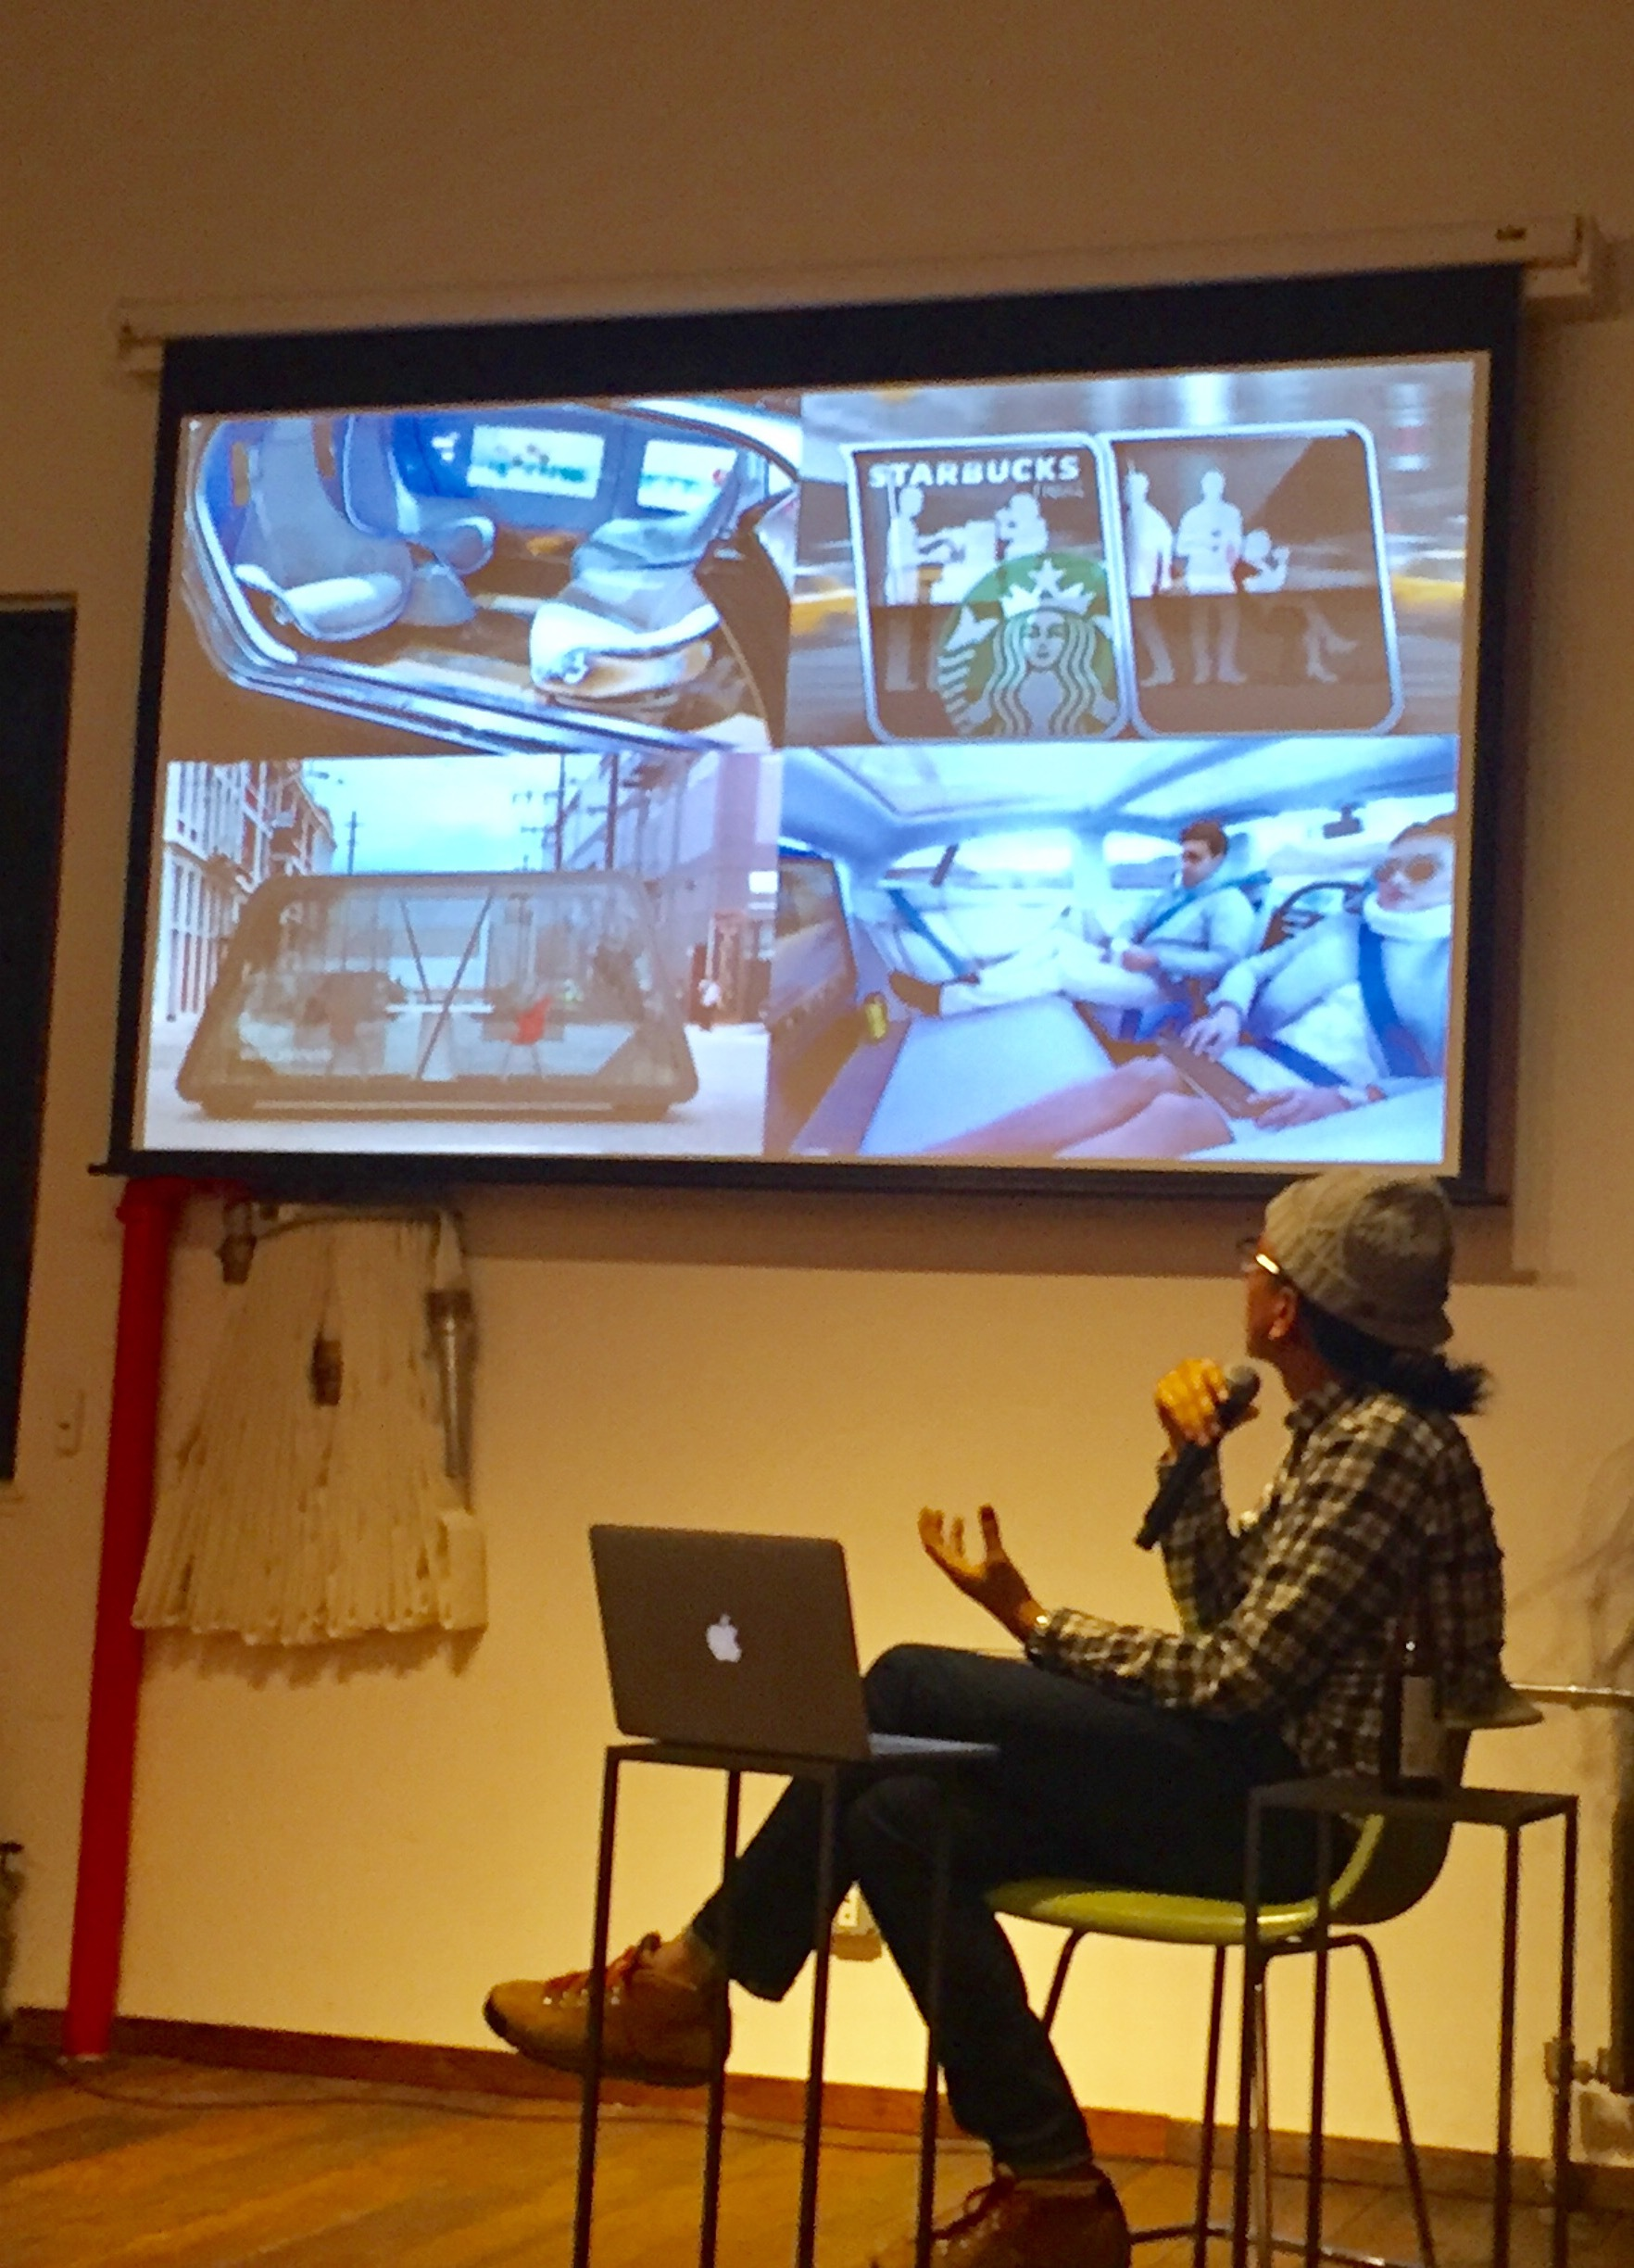 Kobayasha talking about different concept art for autonomous cars, from social spaces where the seats face each other, conference room cars, to futuristic lounge spaces.